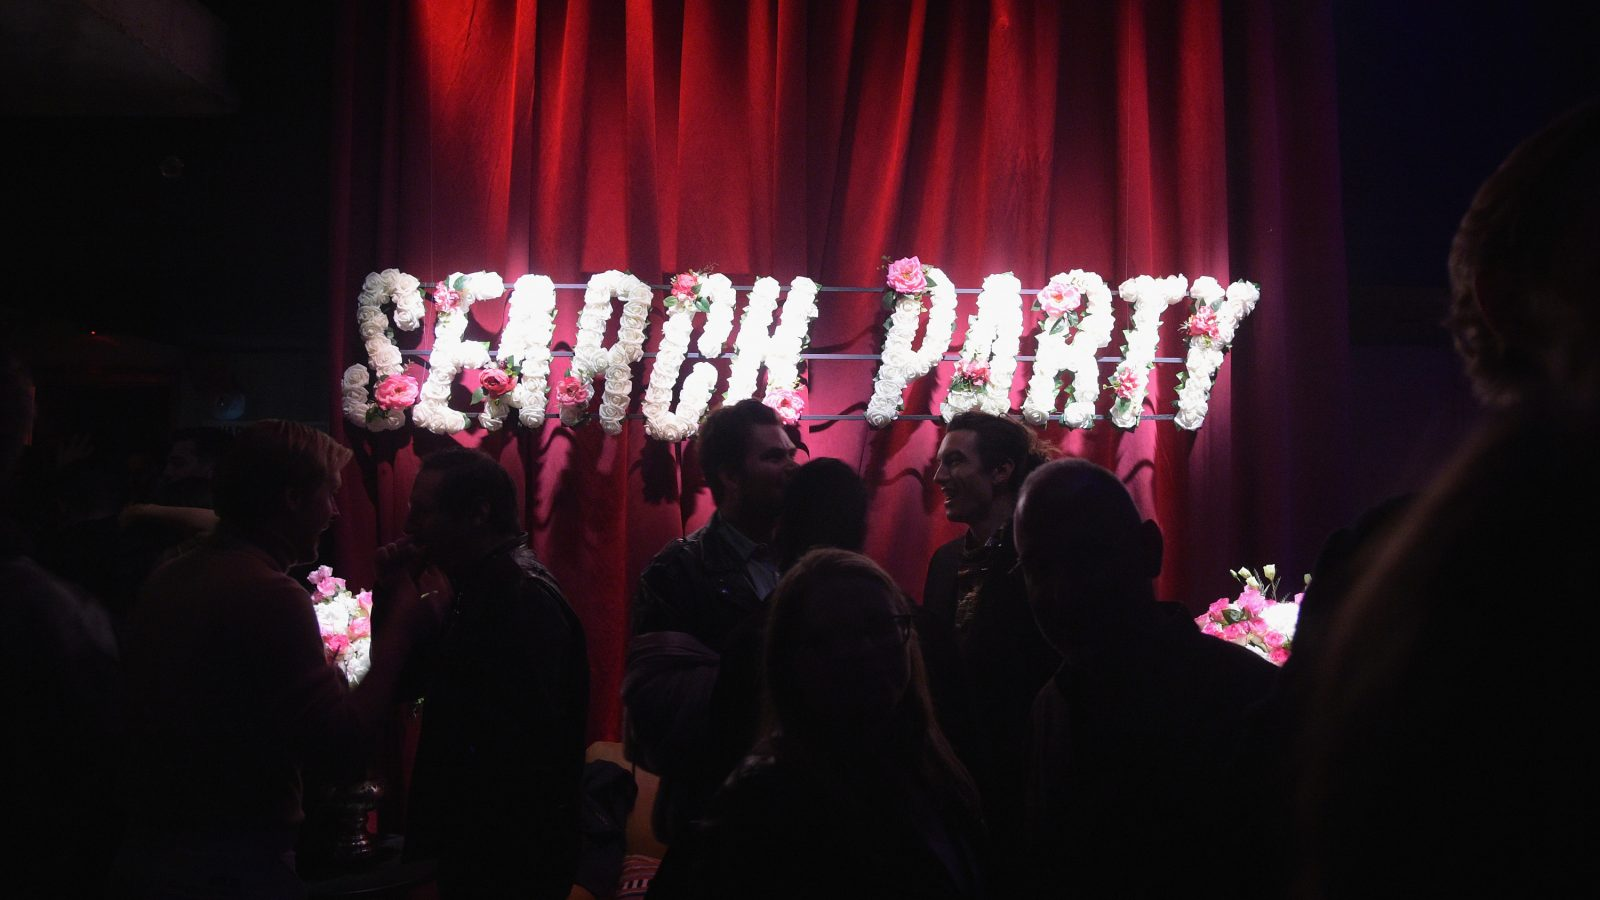 Search Party in letters made of white flowers hanging on a red curtain.